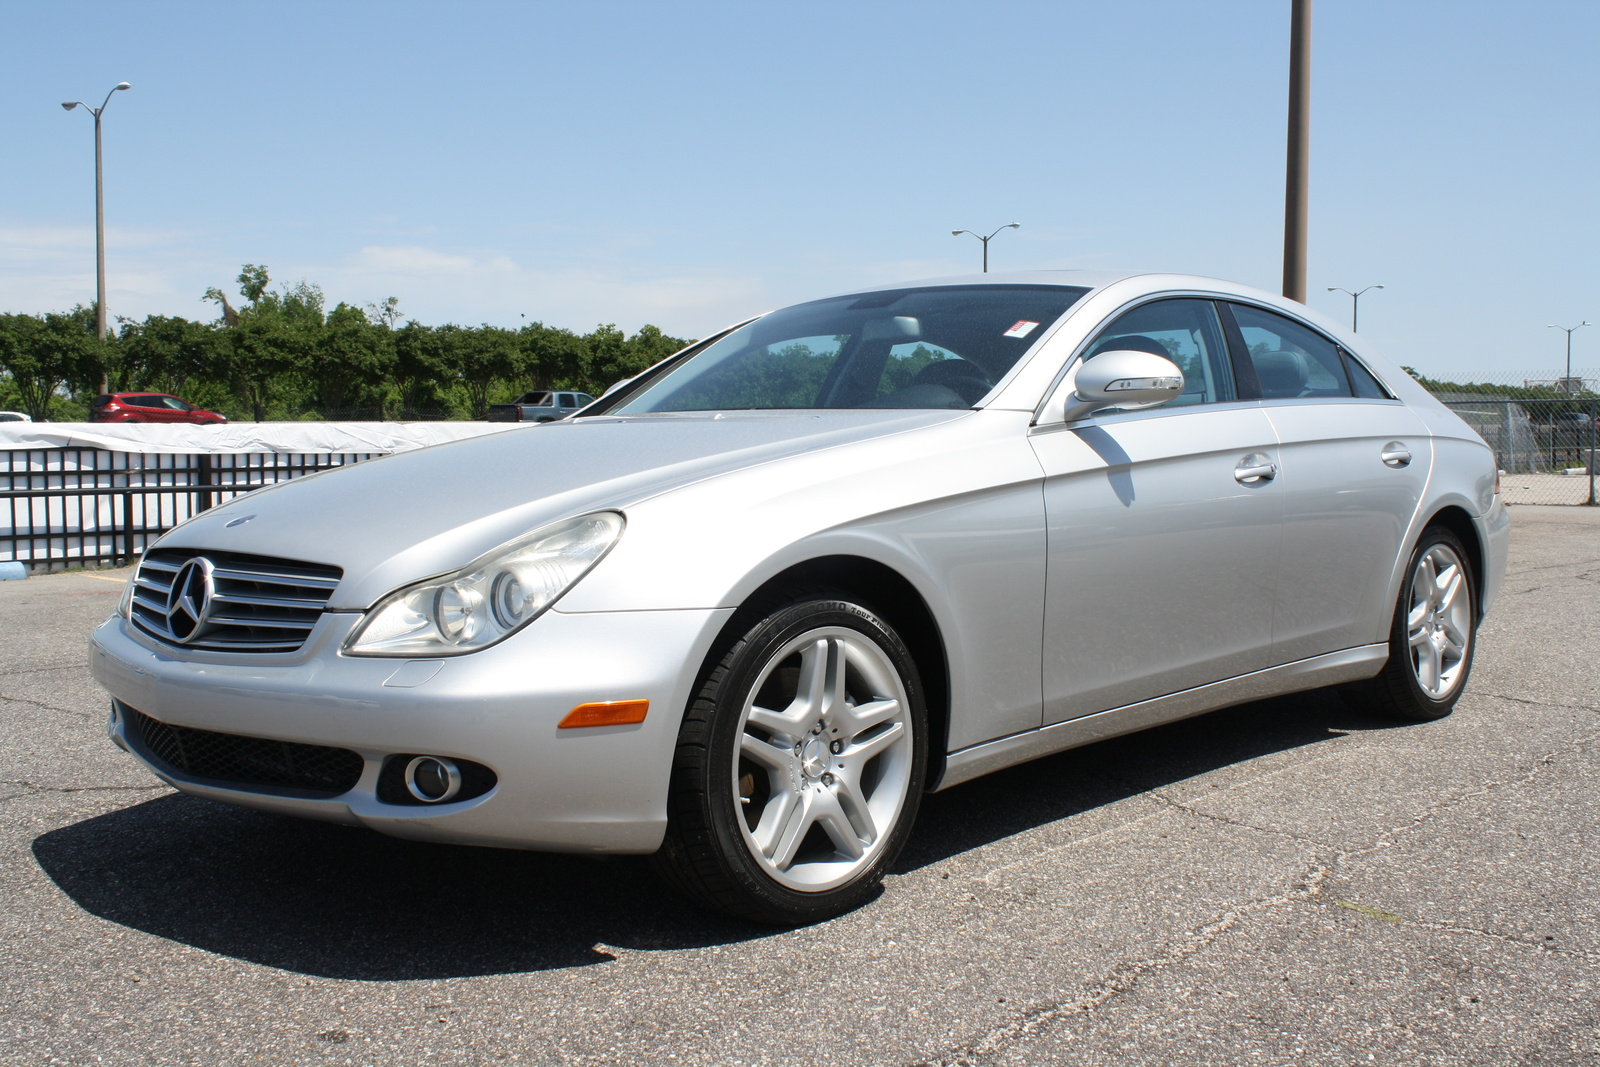 Picture of 2007 mercedes benz cls class cls550 exterior for Mercedes benz cls class